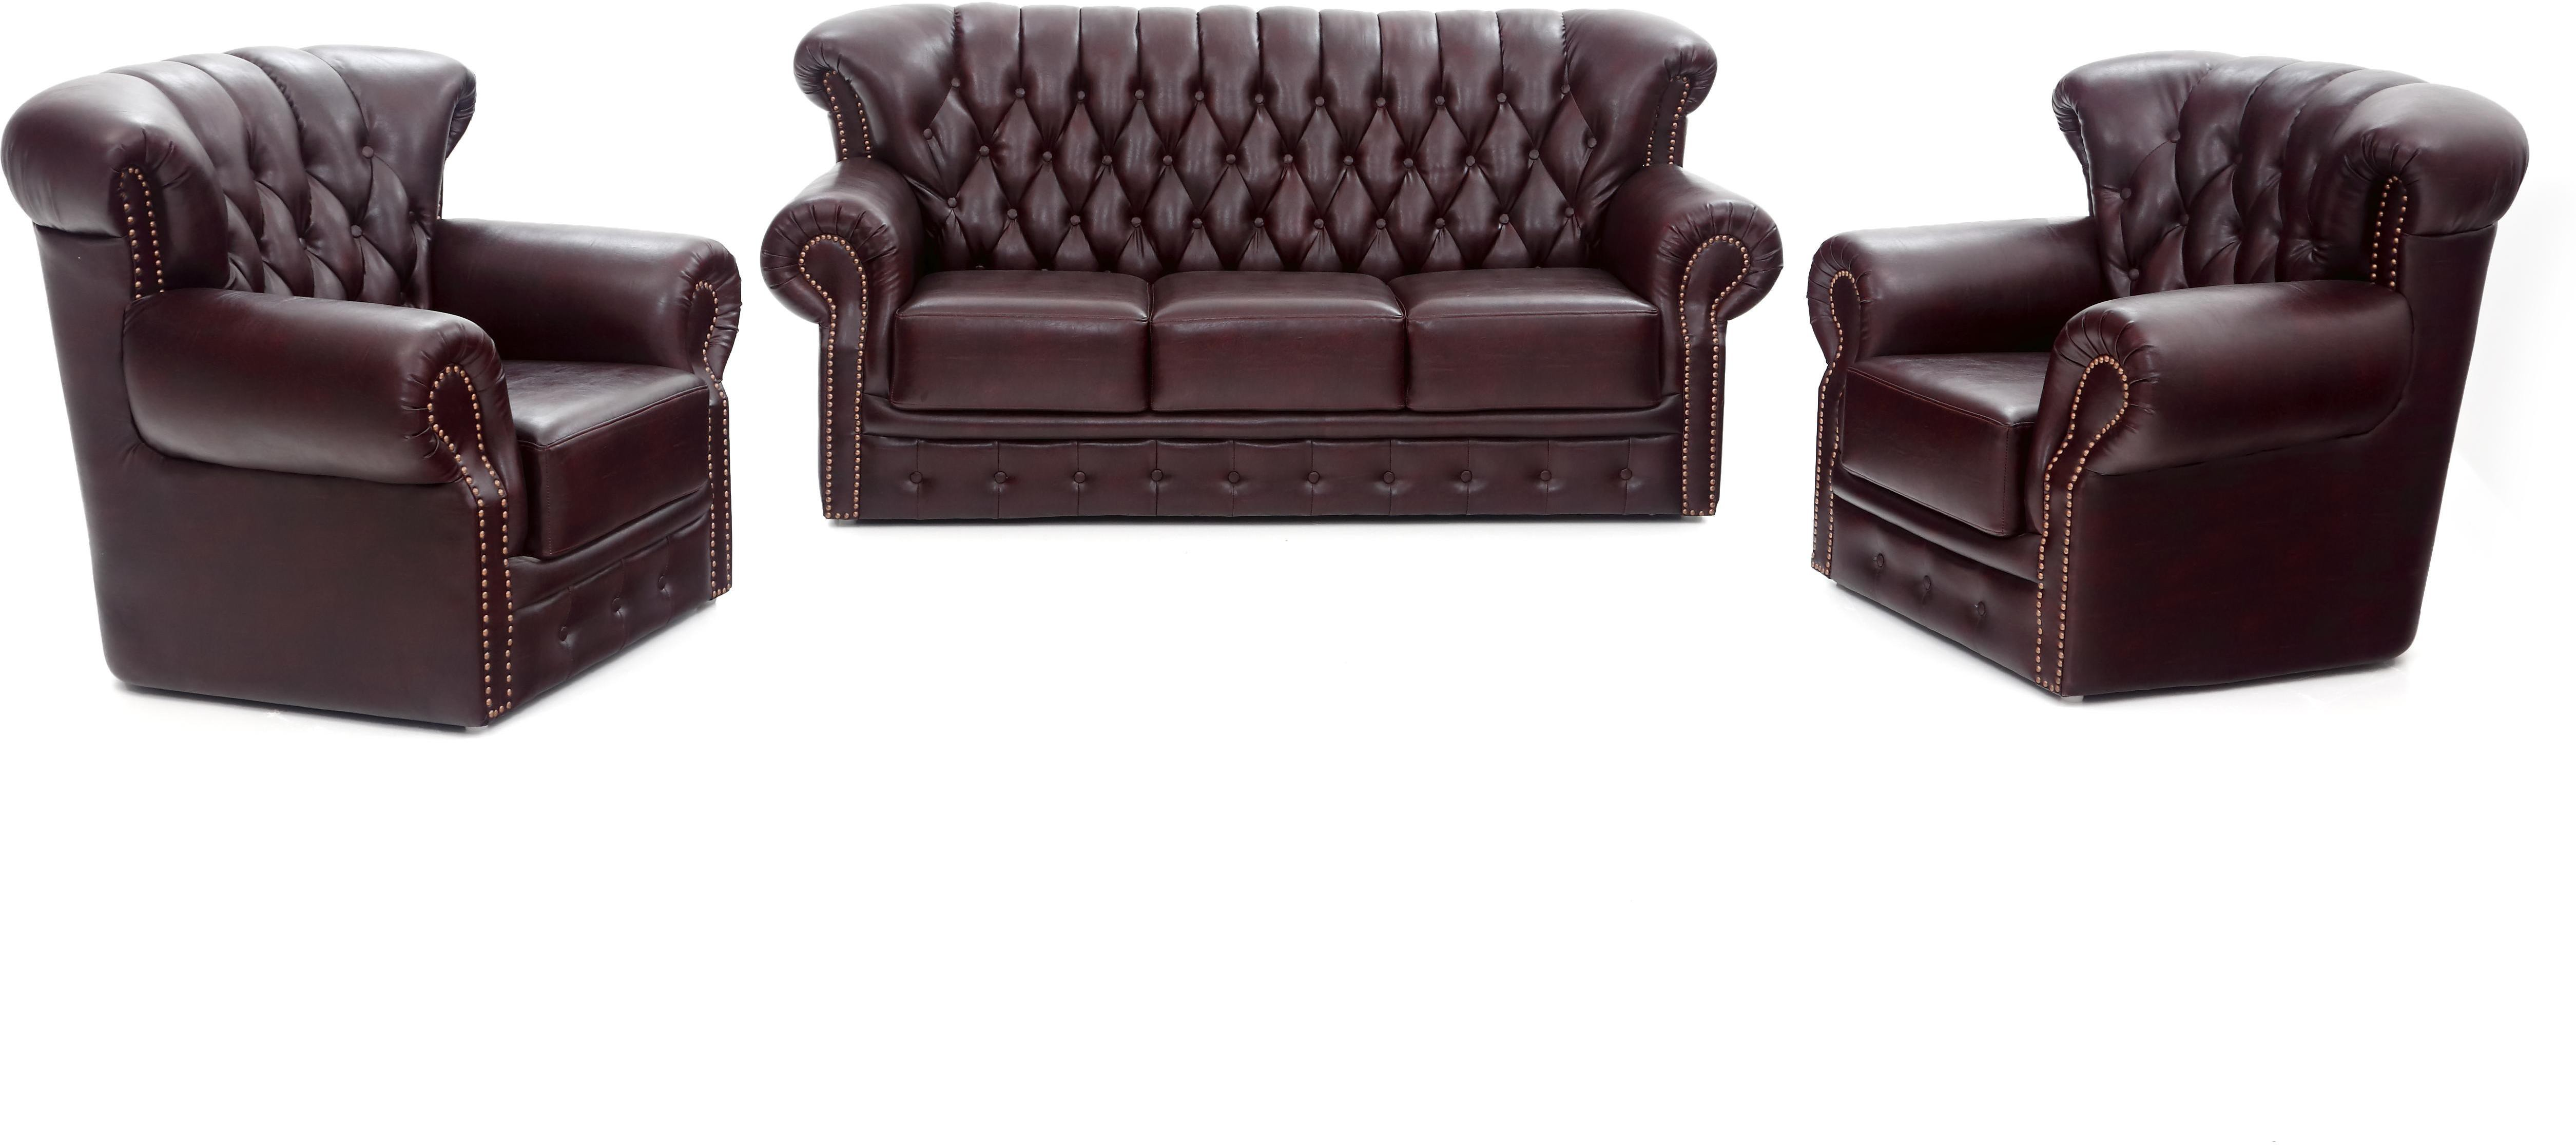 Furnicity leatherette 3 1 1 sofa set price in india for Home sofa set price